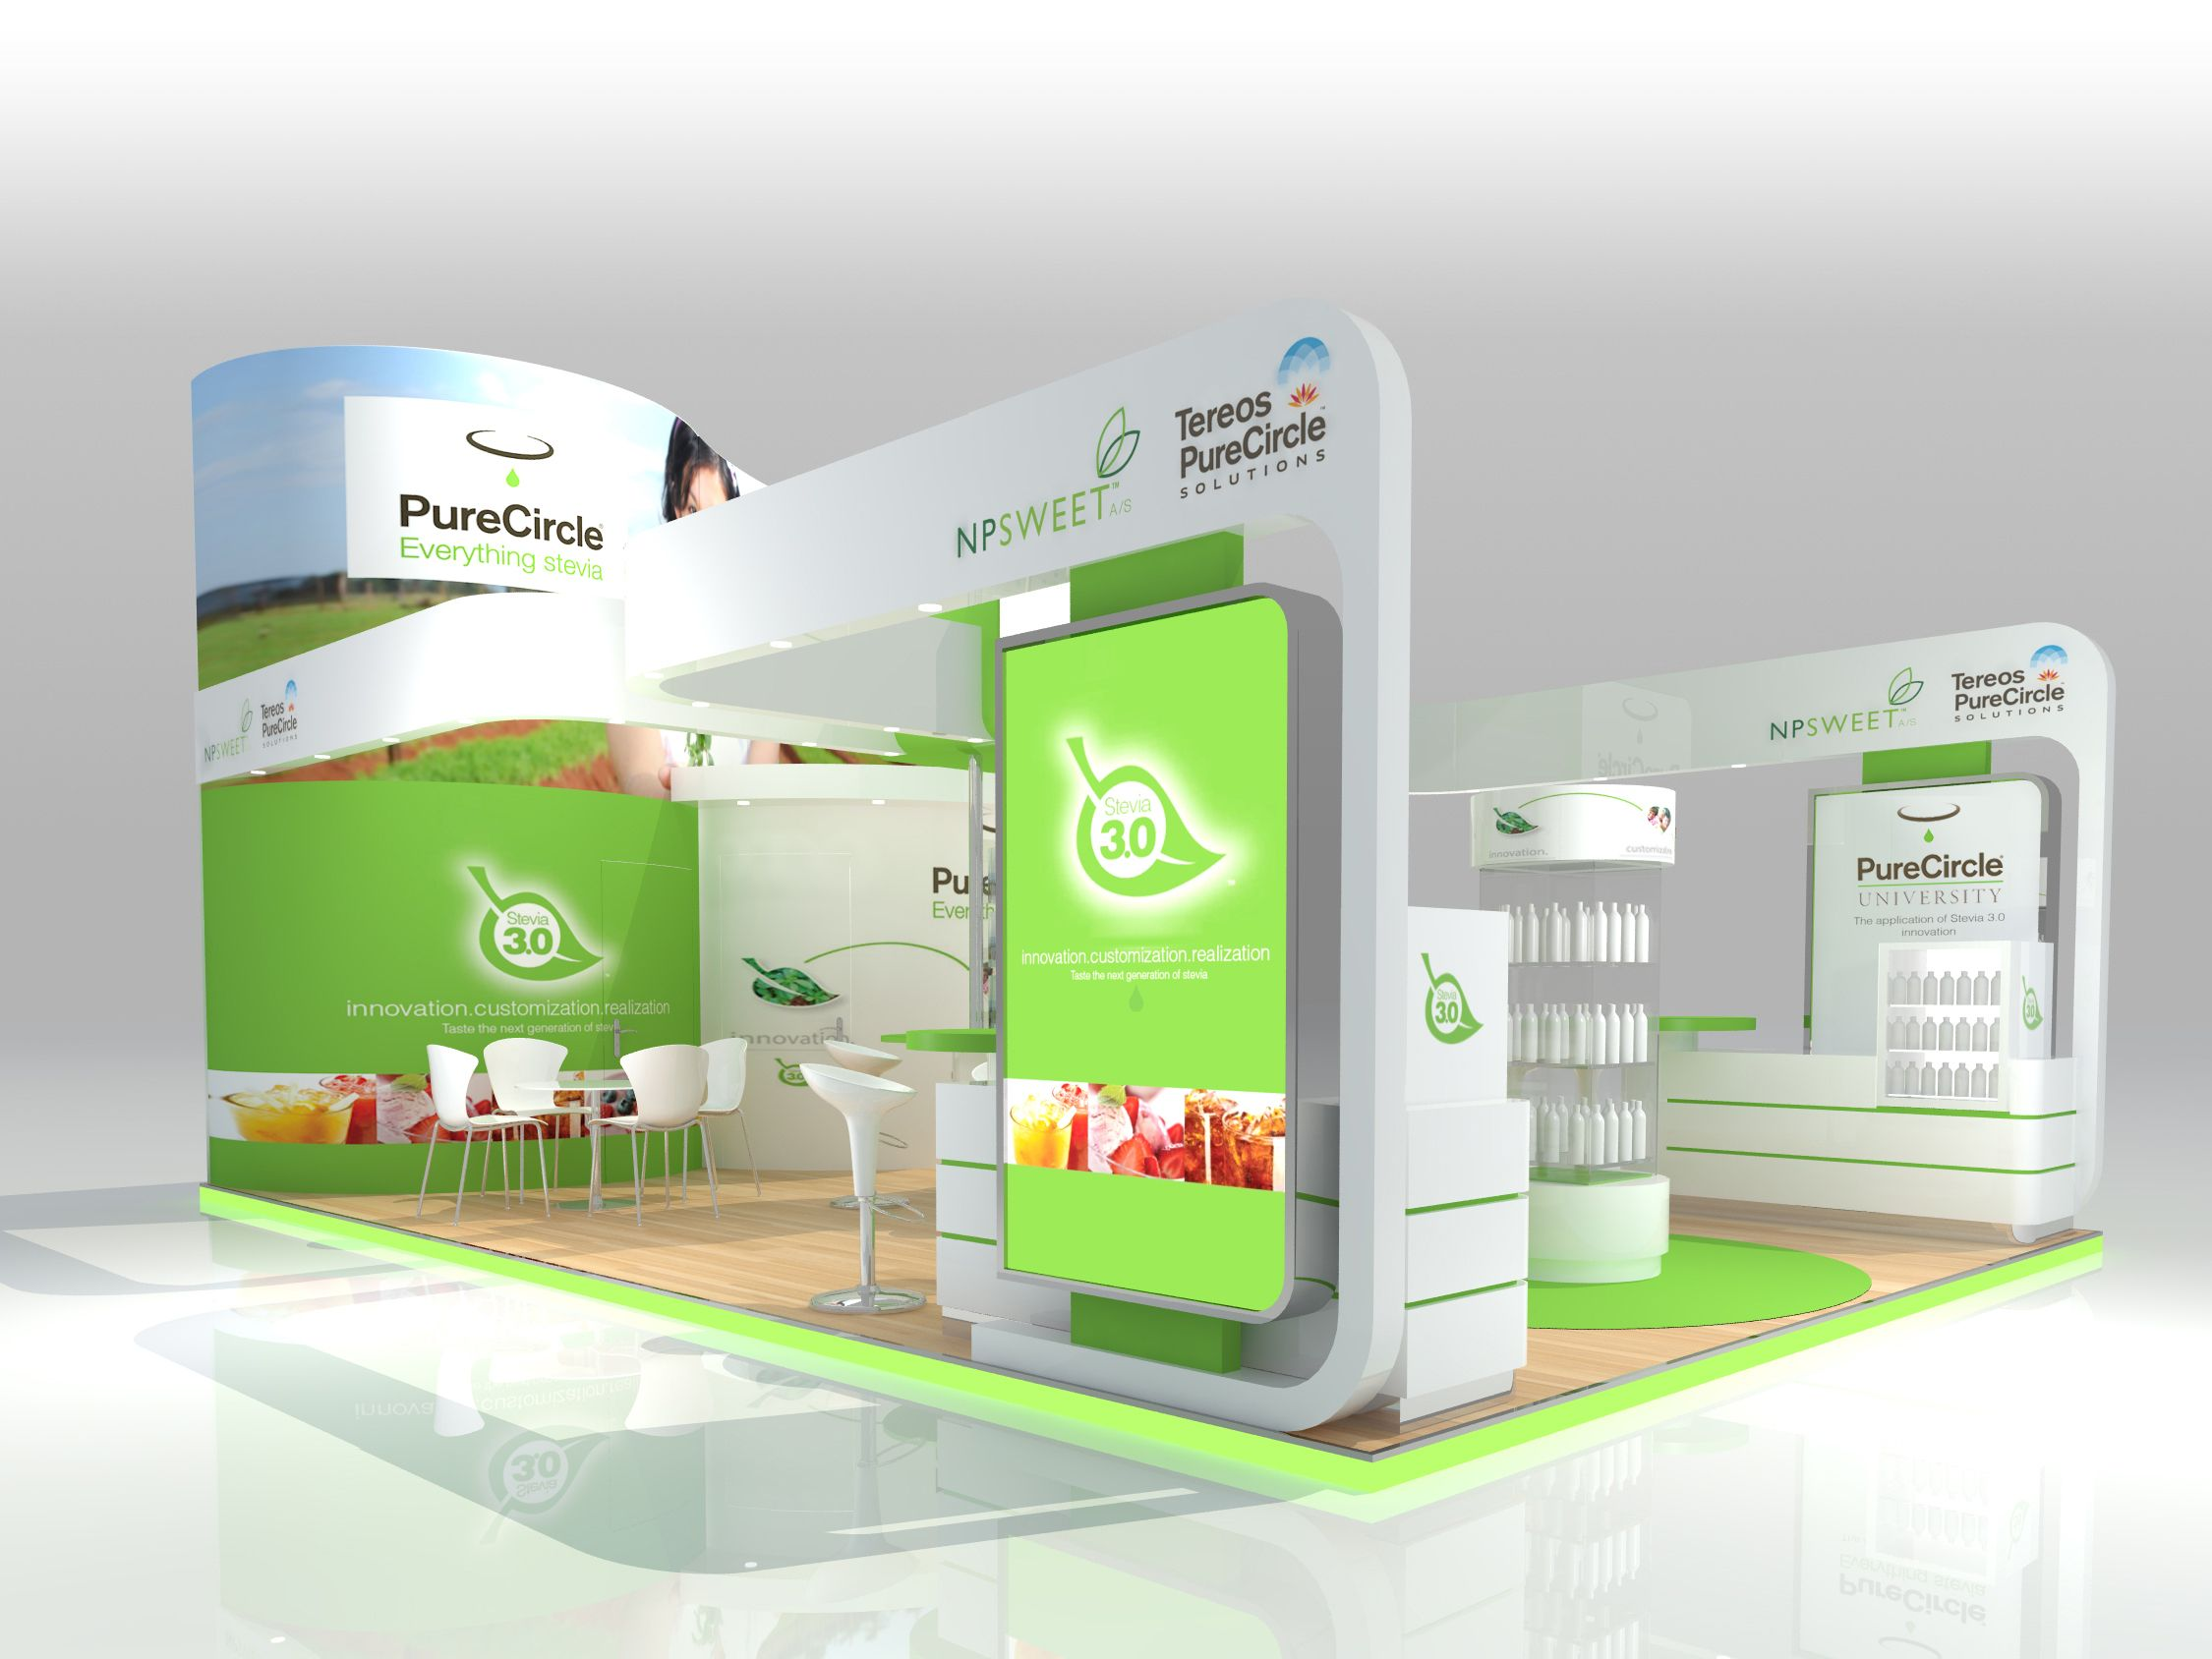 Food Exhibition Stand Design : Exhibition stand renderings for purecircle designed and